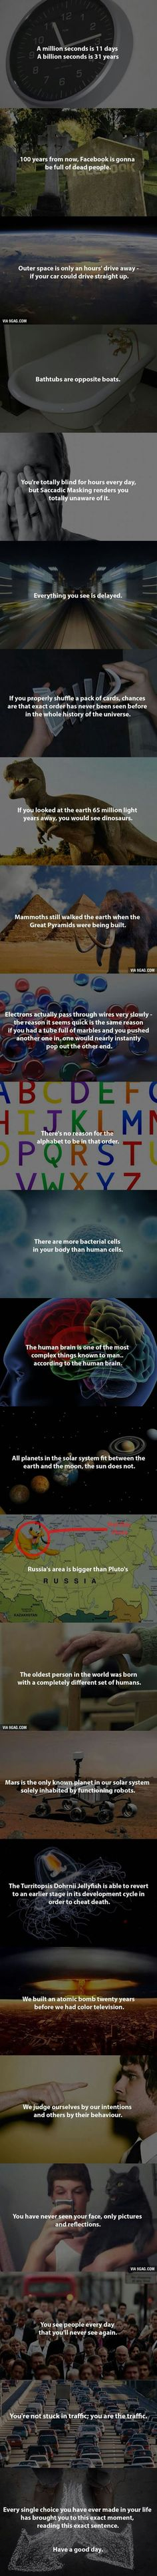 Mind-blowing facts you don't know - 9GAG